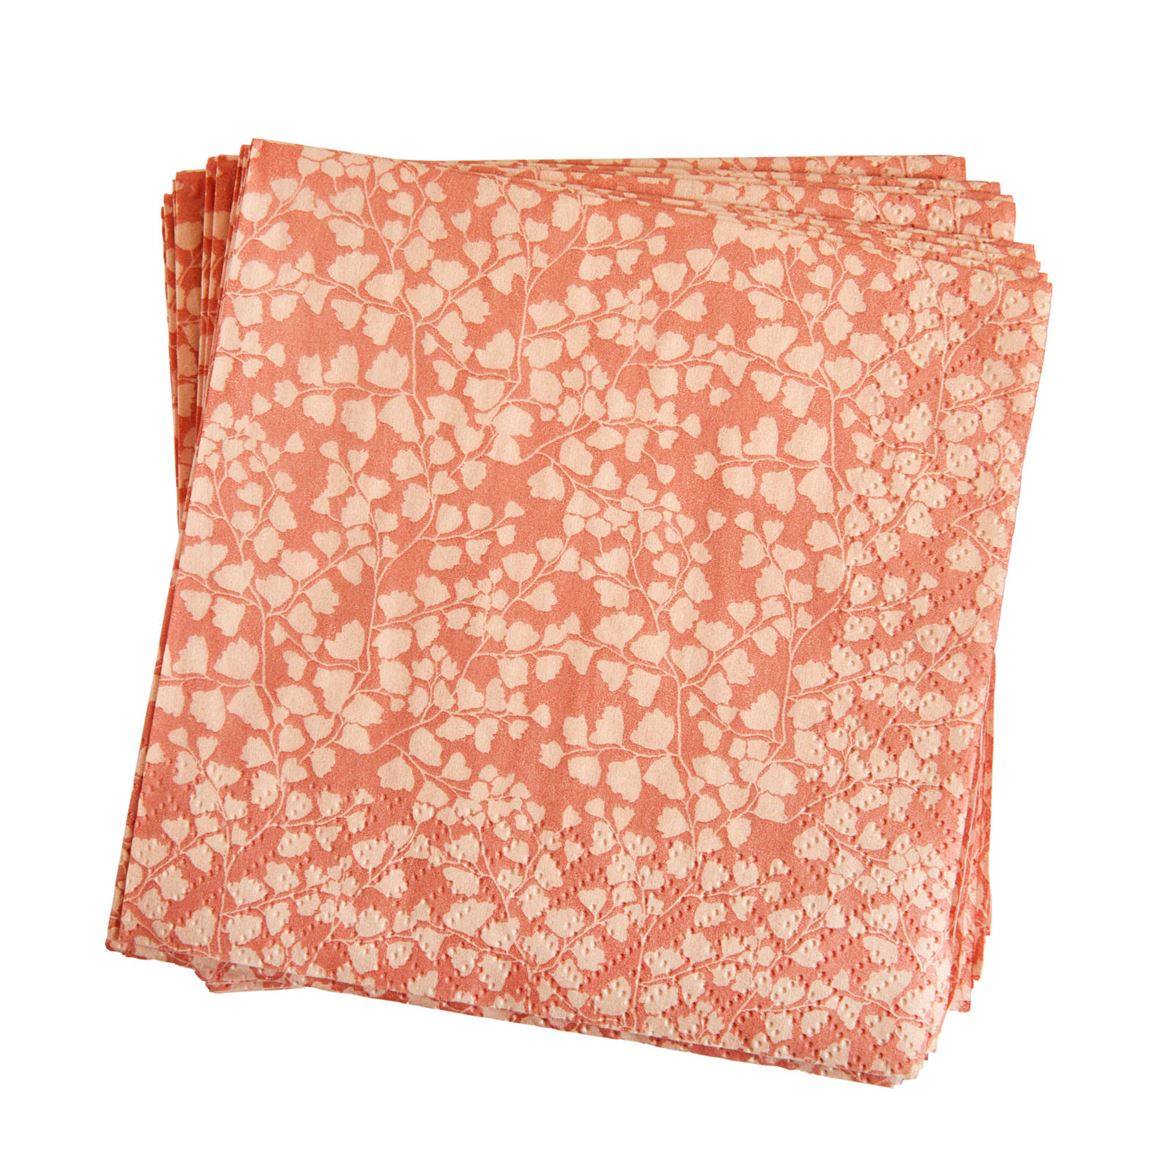 AURELIE  Set de 20 serviettes rose Larg. 25 x Long. 25 cm_aurelie--set-de-20-serviettes-rose-larg--25-x-long--25-cm